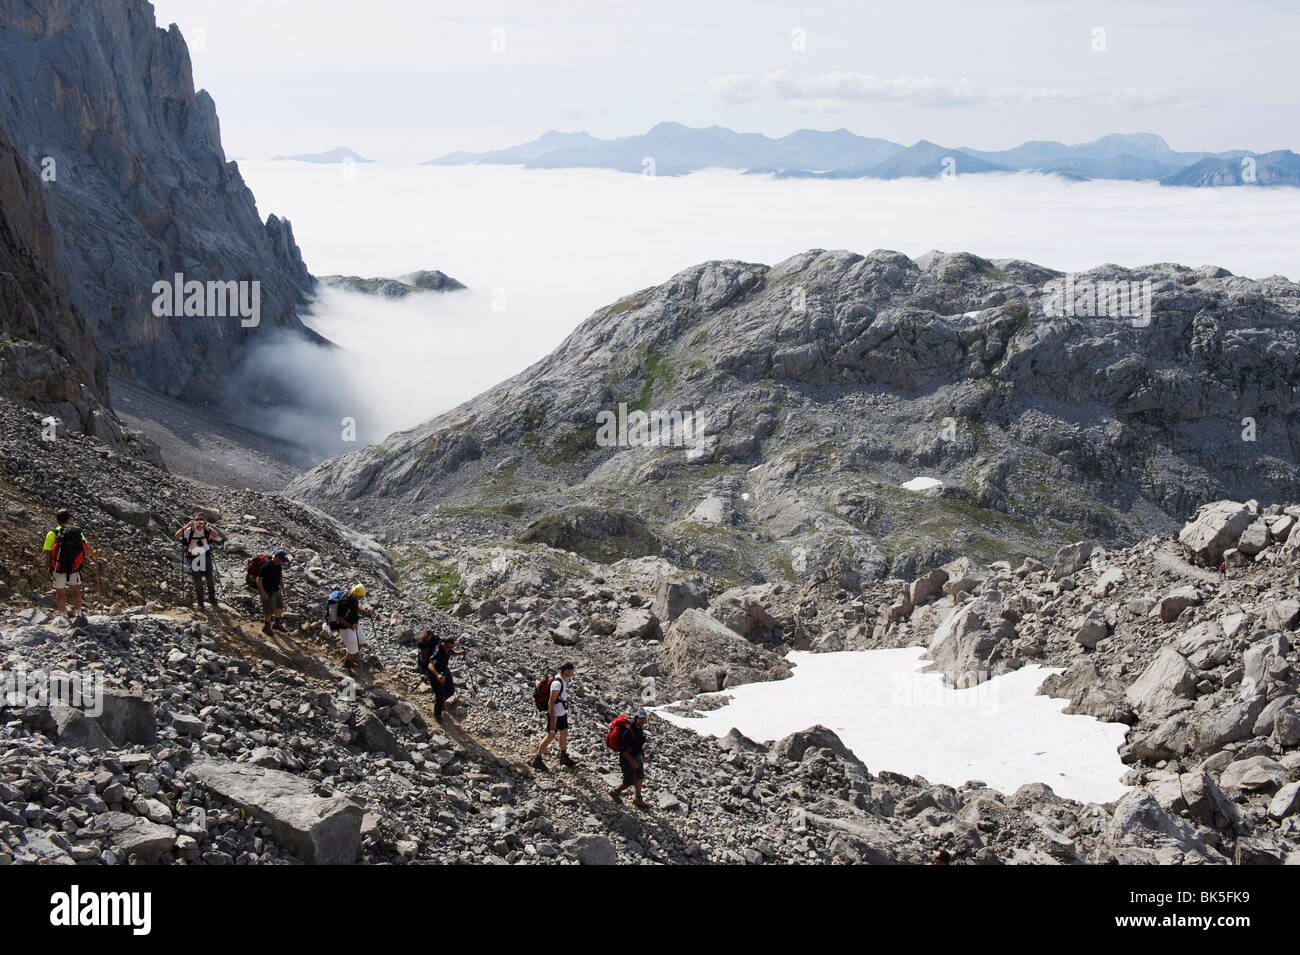 Hikers in the Picos de Europa National Park, shared by the provinces of Asturias, Cantabria and Leon, Spain, Europe - Stock Image